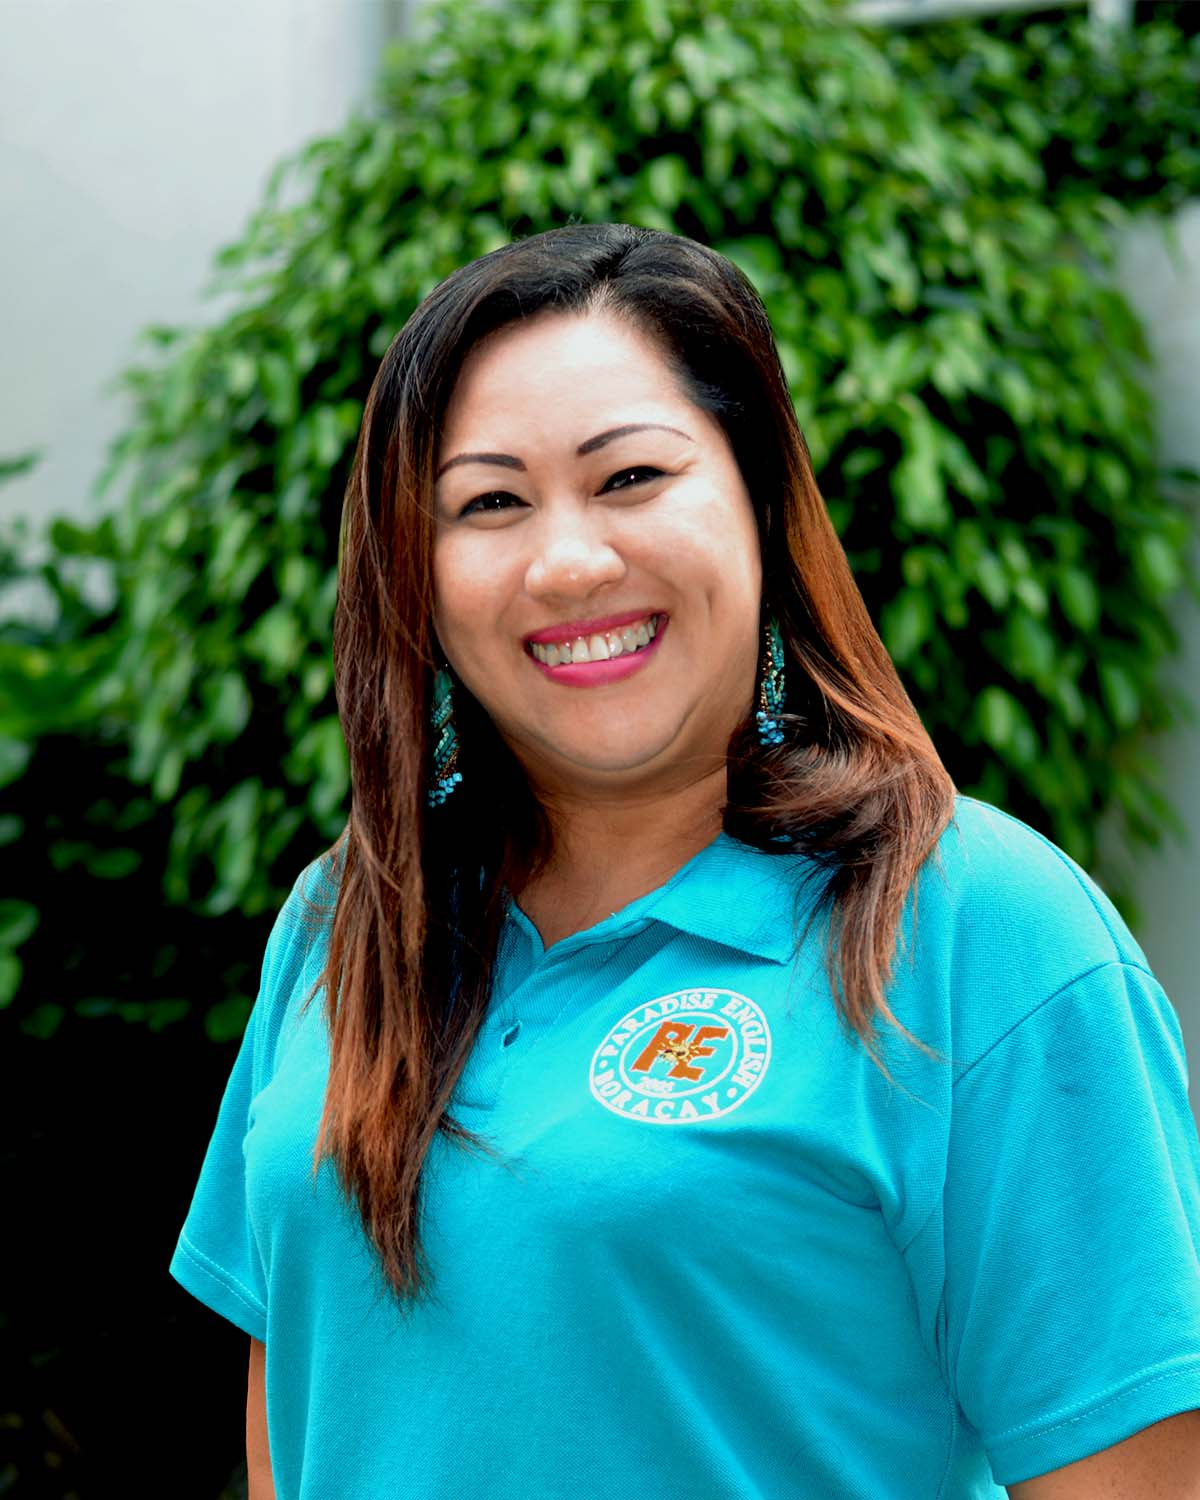 Paradise English teachers. Elle from the US/Philippines